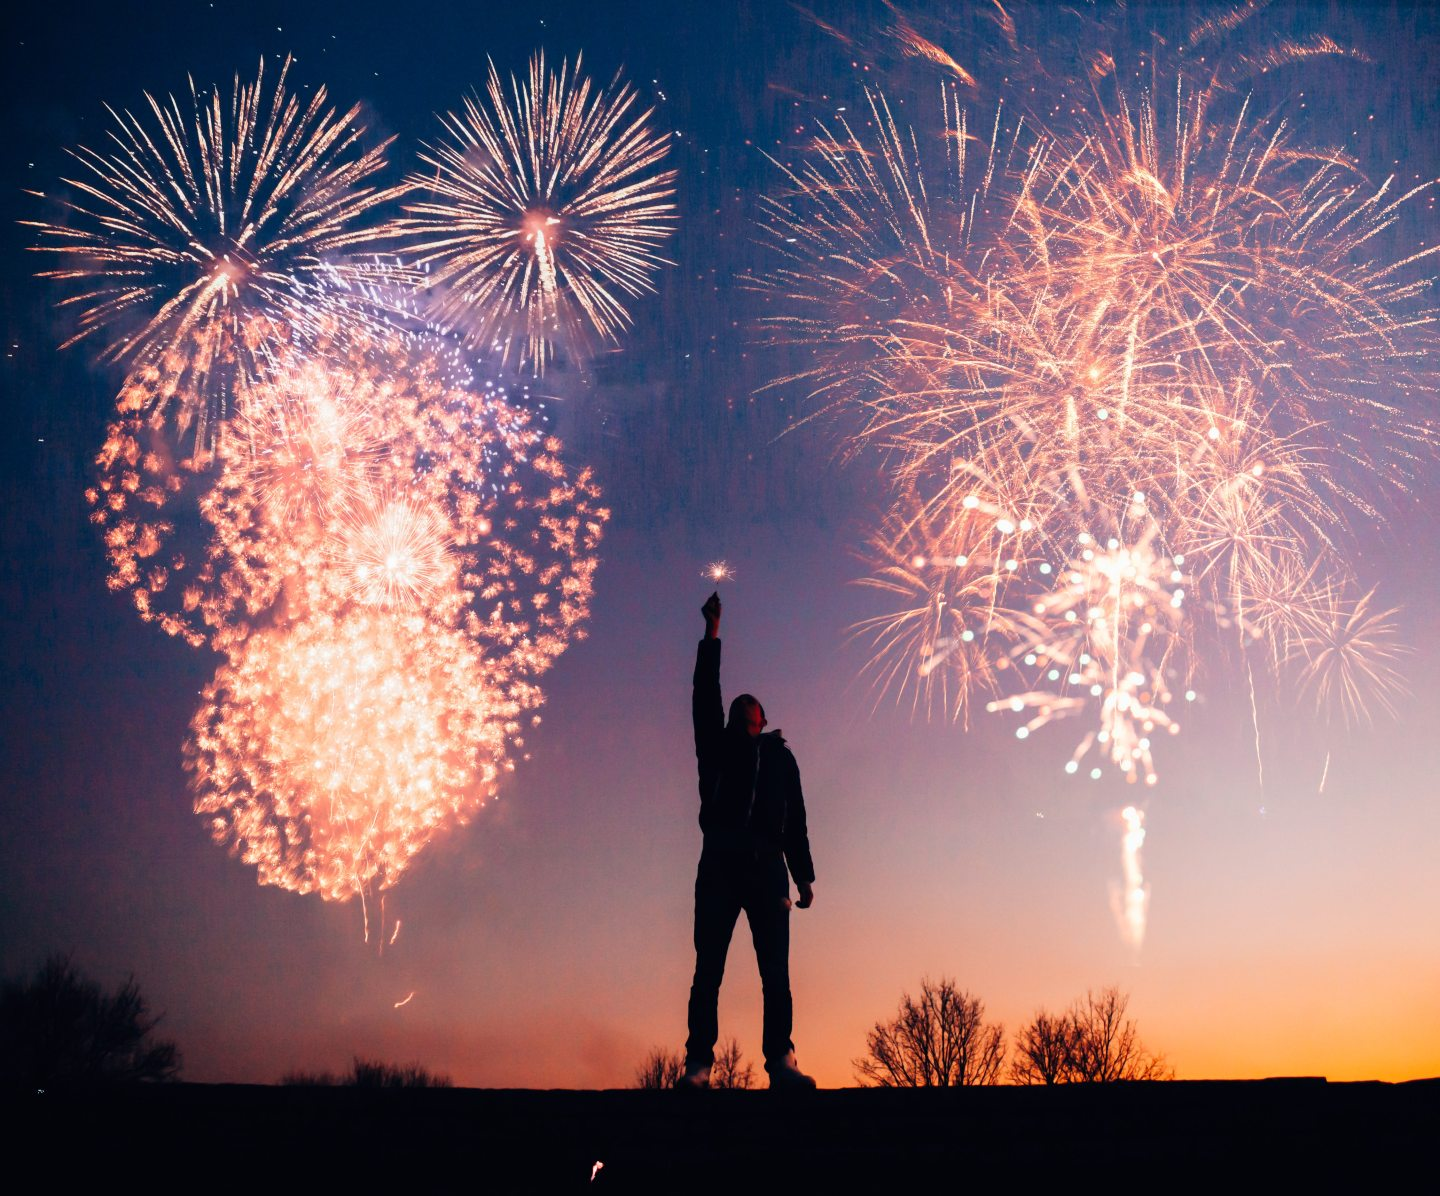 An image of a man holding a sparkler to a sky filled with fireworks